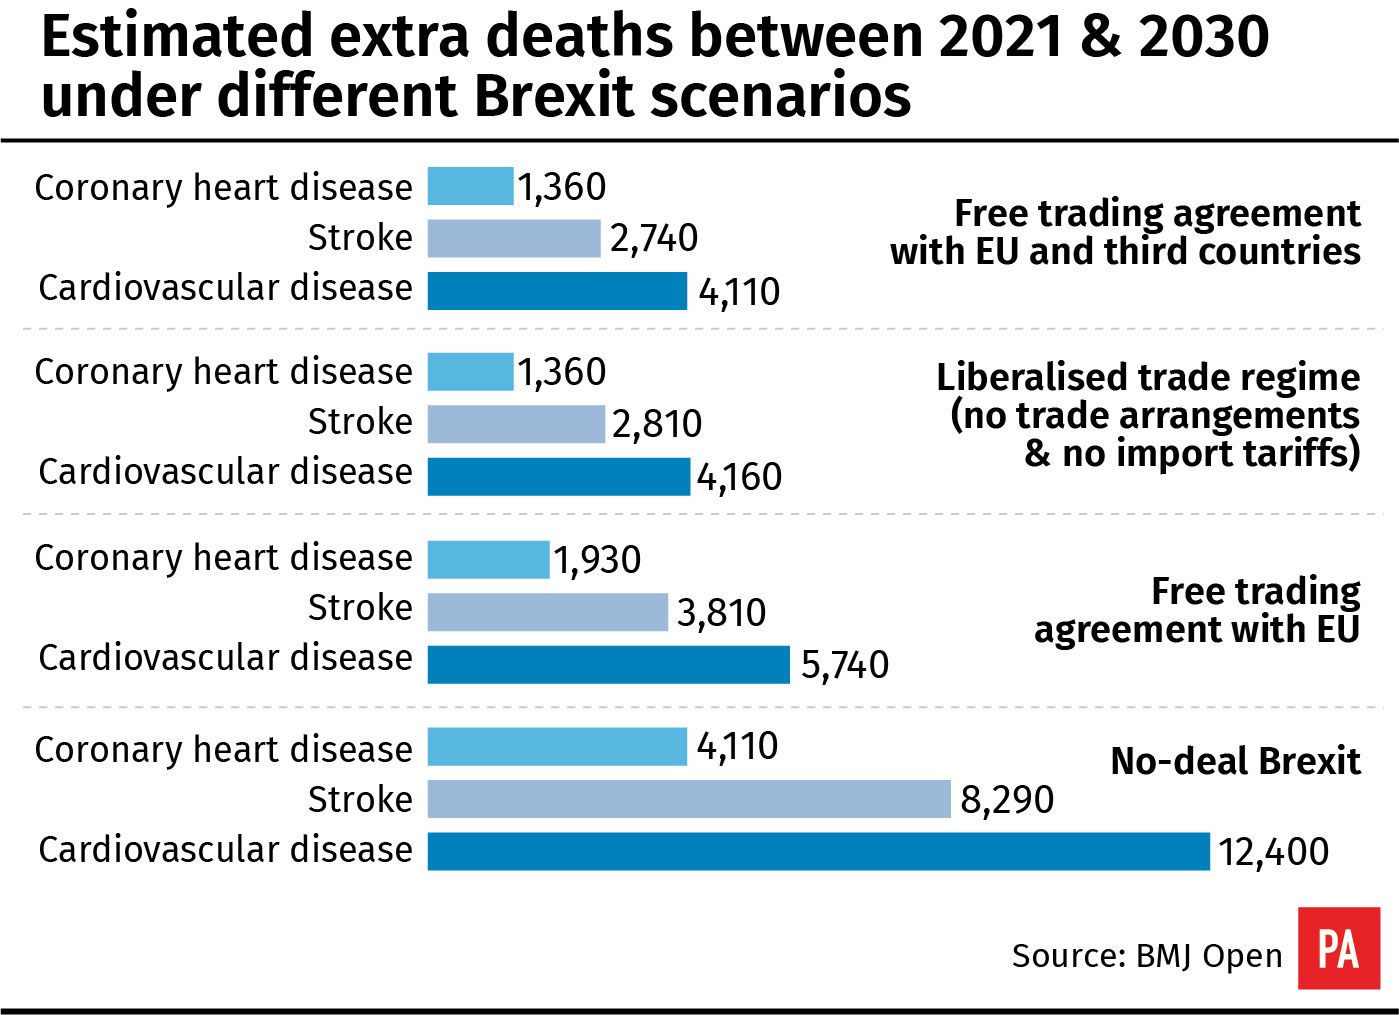 Estimated extra deaths between 2021 & 2030 under different Brexit scenarios